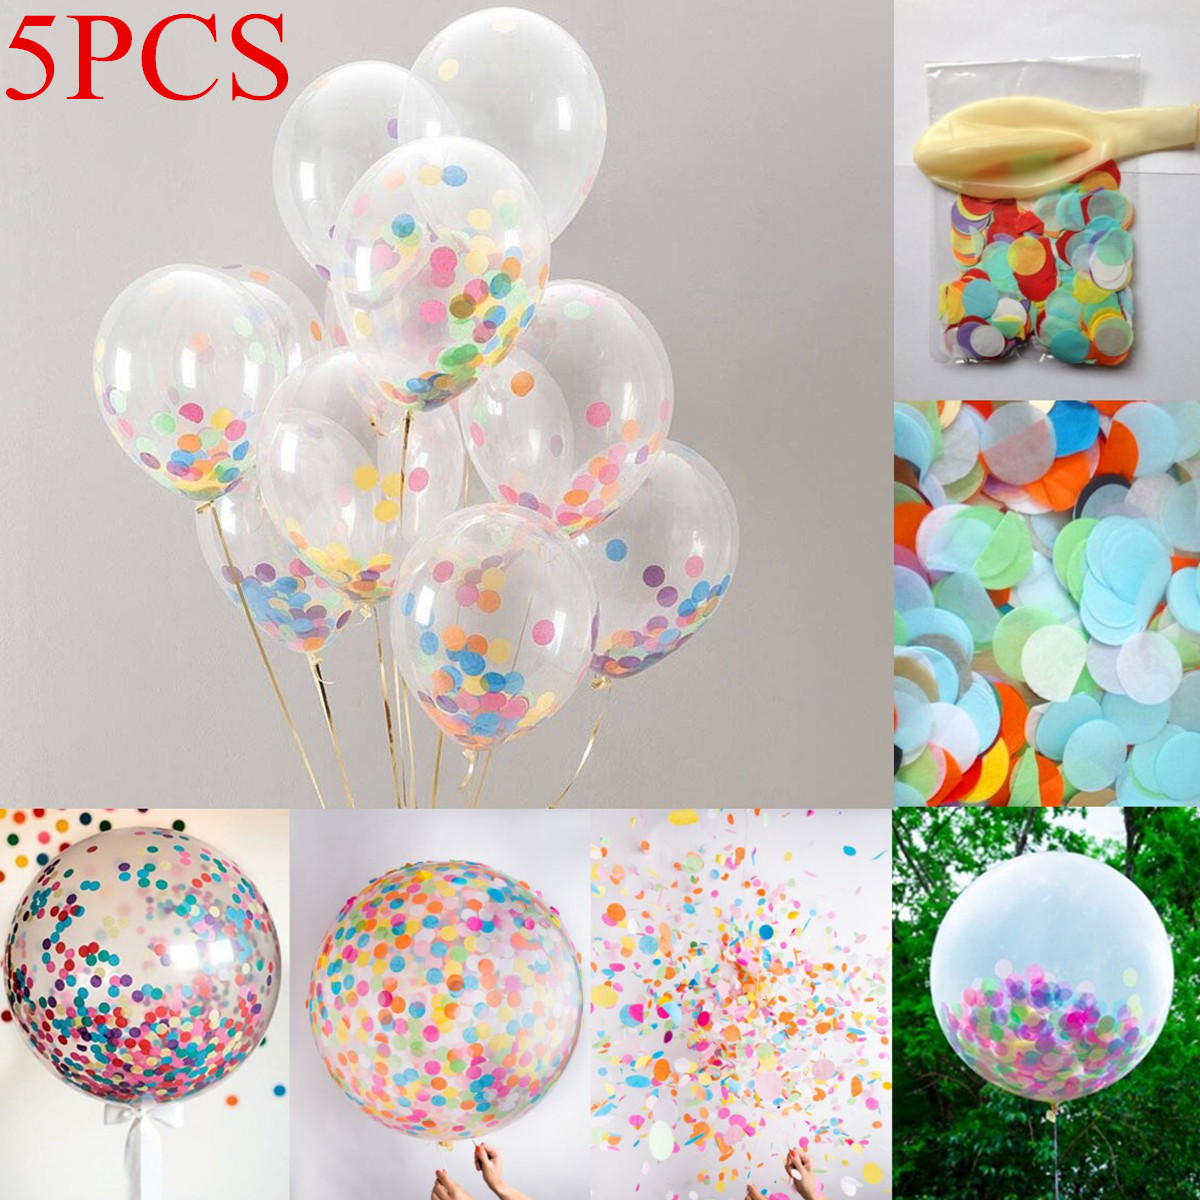 5Pcs 18 inch Clear Latex Balloons With Confetti Wedding Birthday Party Christmas Gift